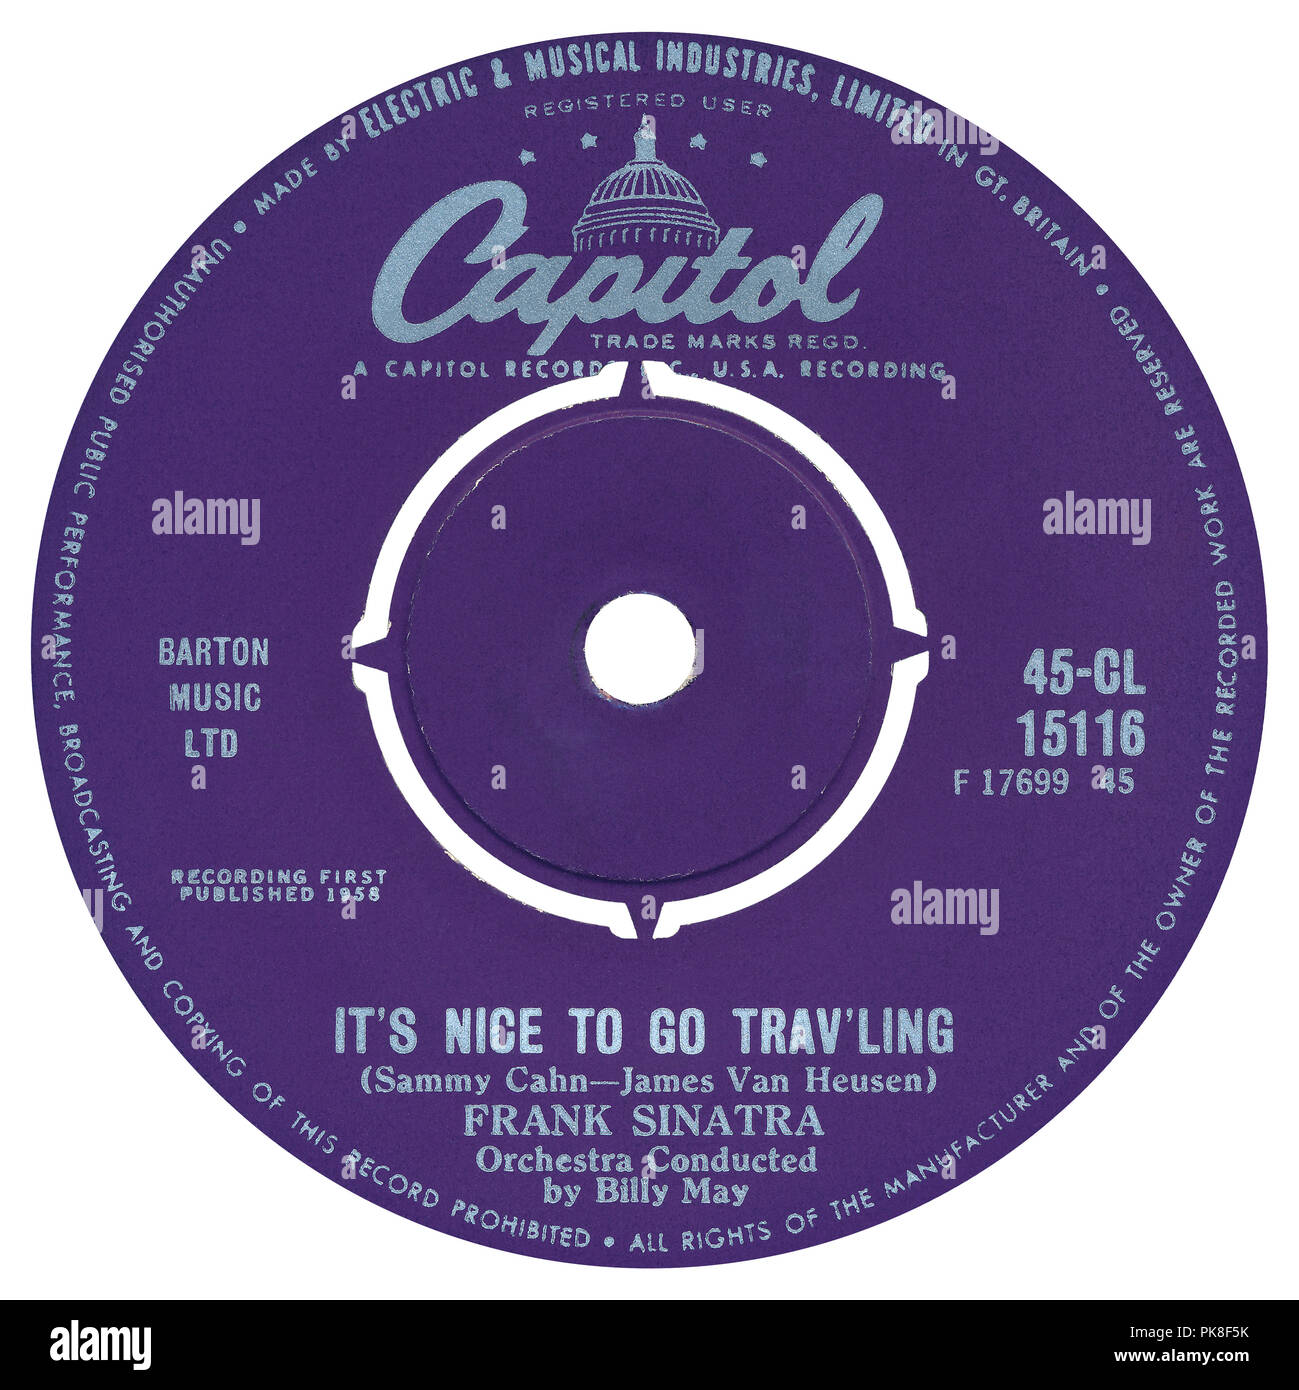 "UK 45 rpm 7"" single of It's Nice To Go Trav'ling by Frank Sinatra on the Capitol label from 1960 (although both tracks are from the 1958 LP Come Fly With Me.) Written by Sammy Cahn and Jimmy Van Heusen, produced by Voyle Gilmore and arranged by Billy May. Stock Photo"